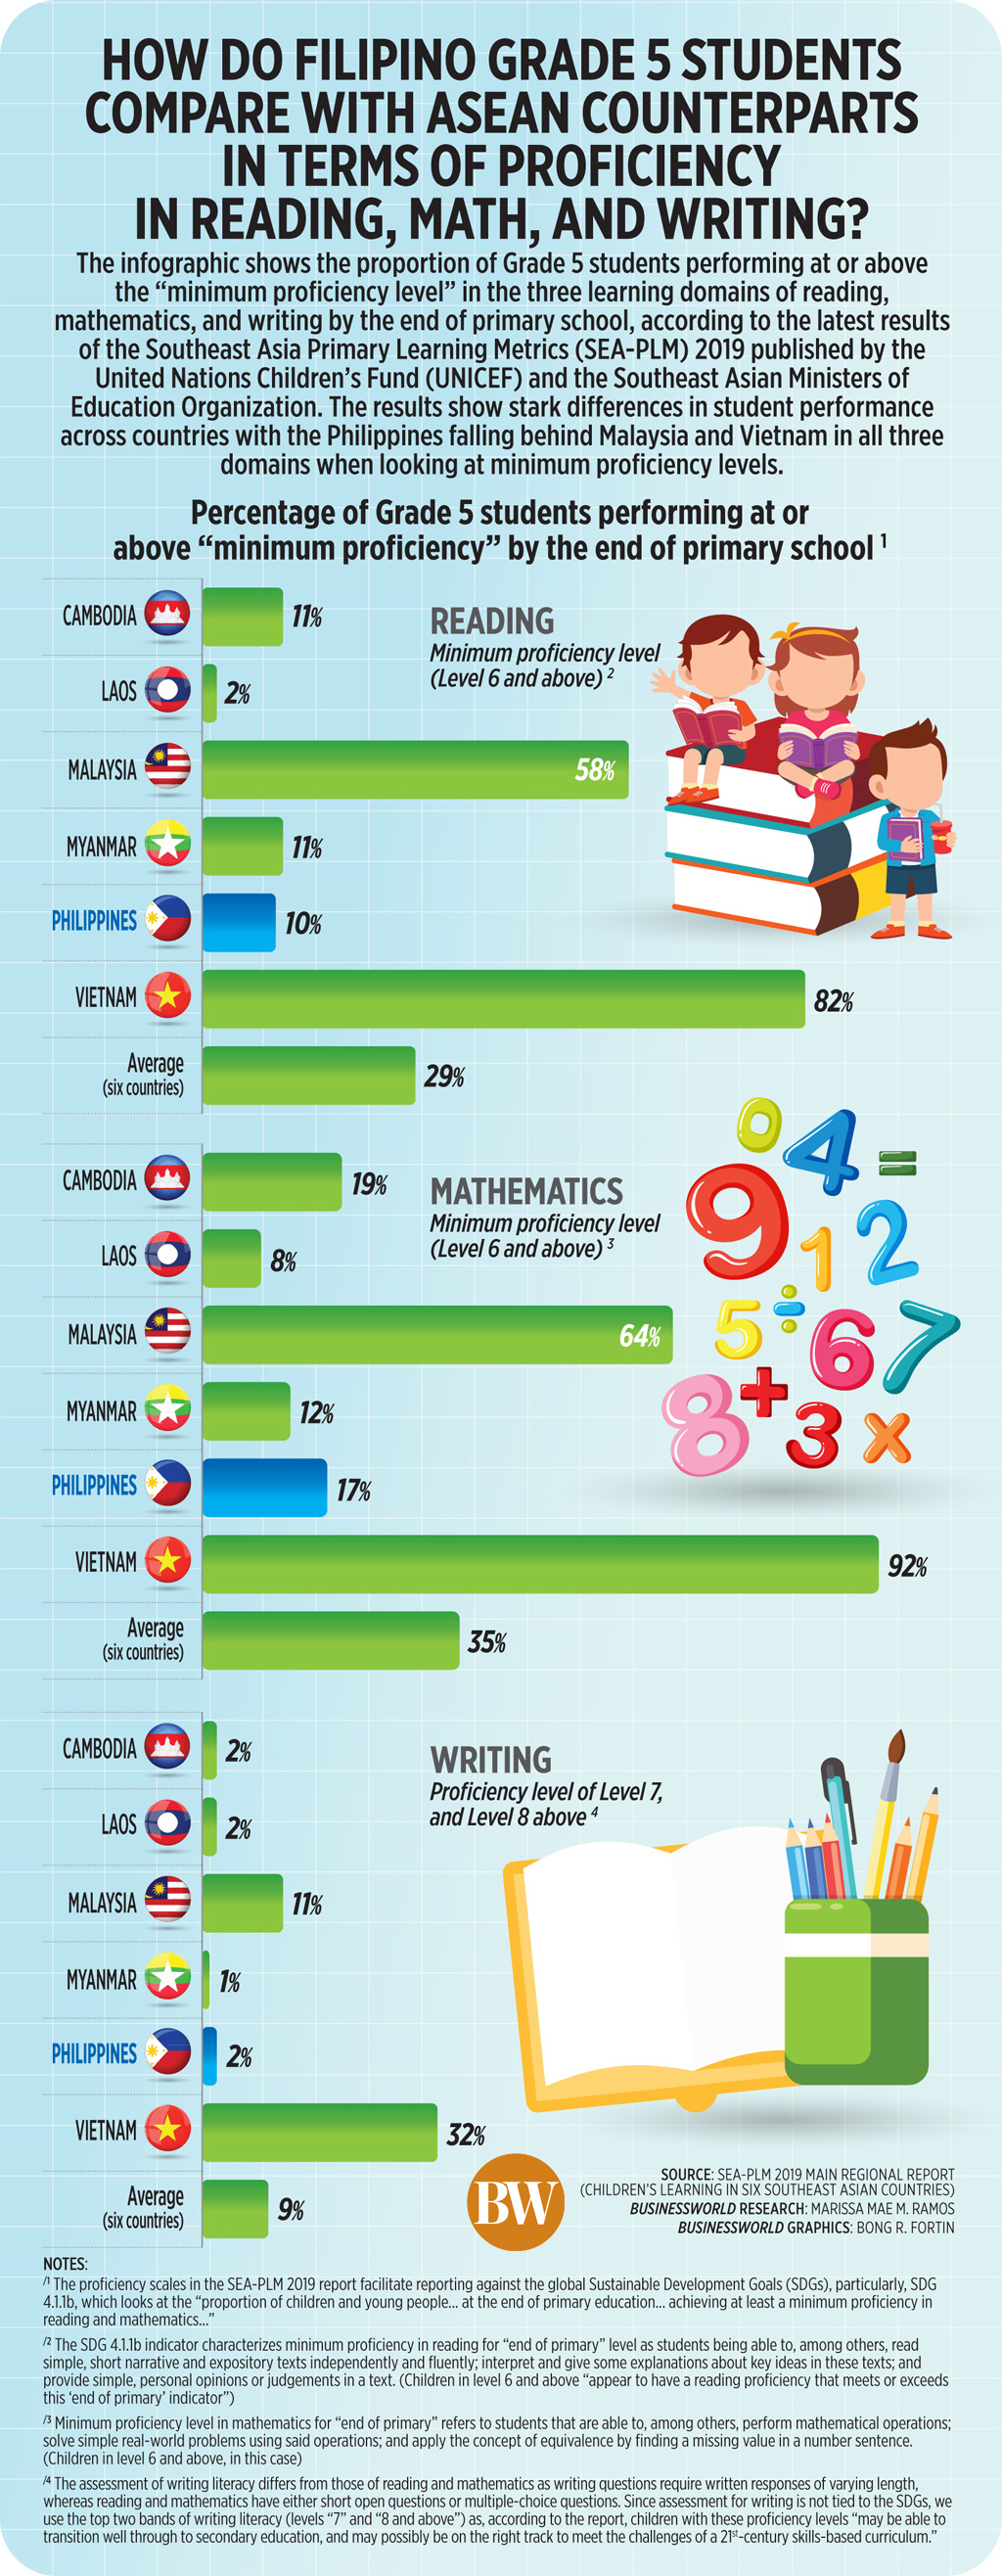 How do Filipino grade 5 students compare with asean counterparts in terms of proficiency in reading, math, and writing?